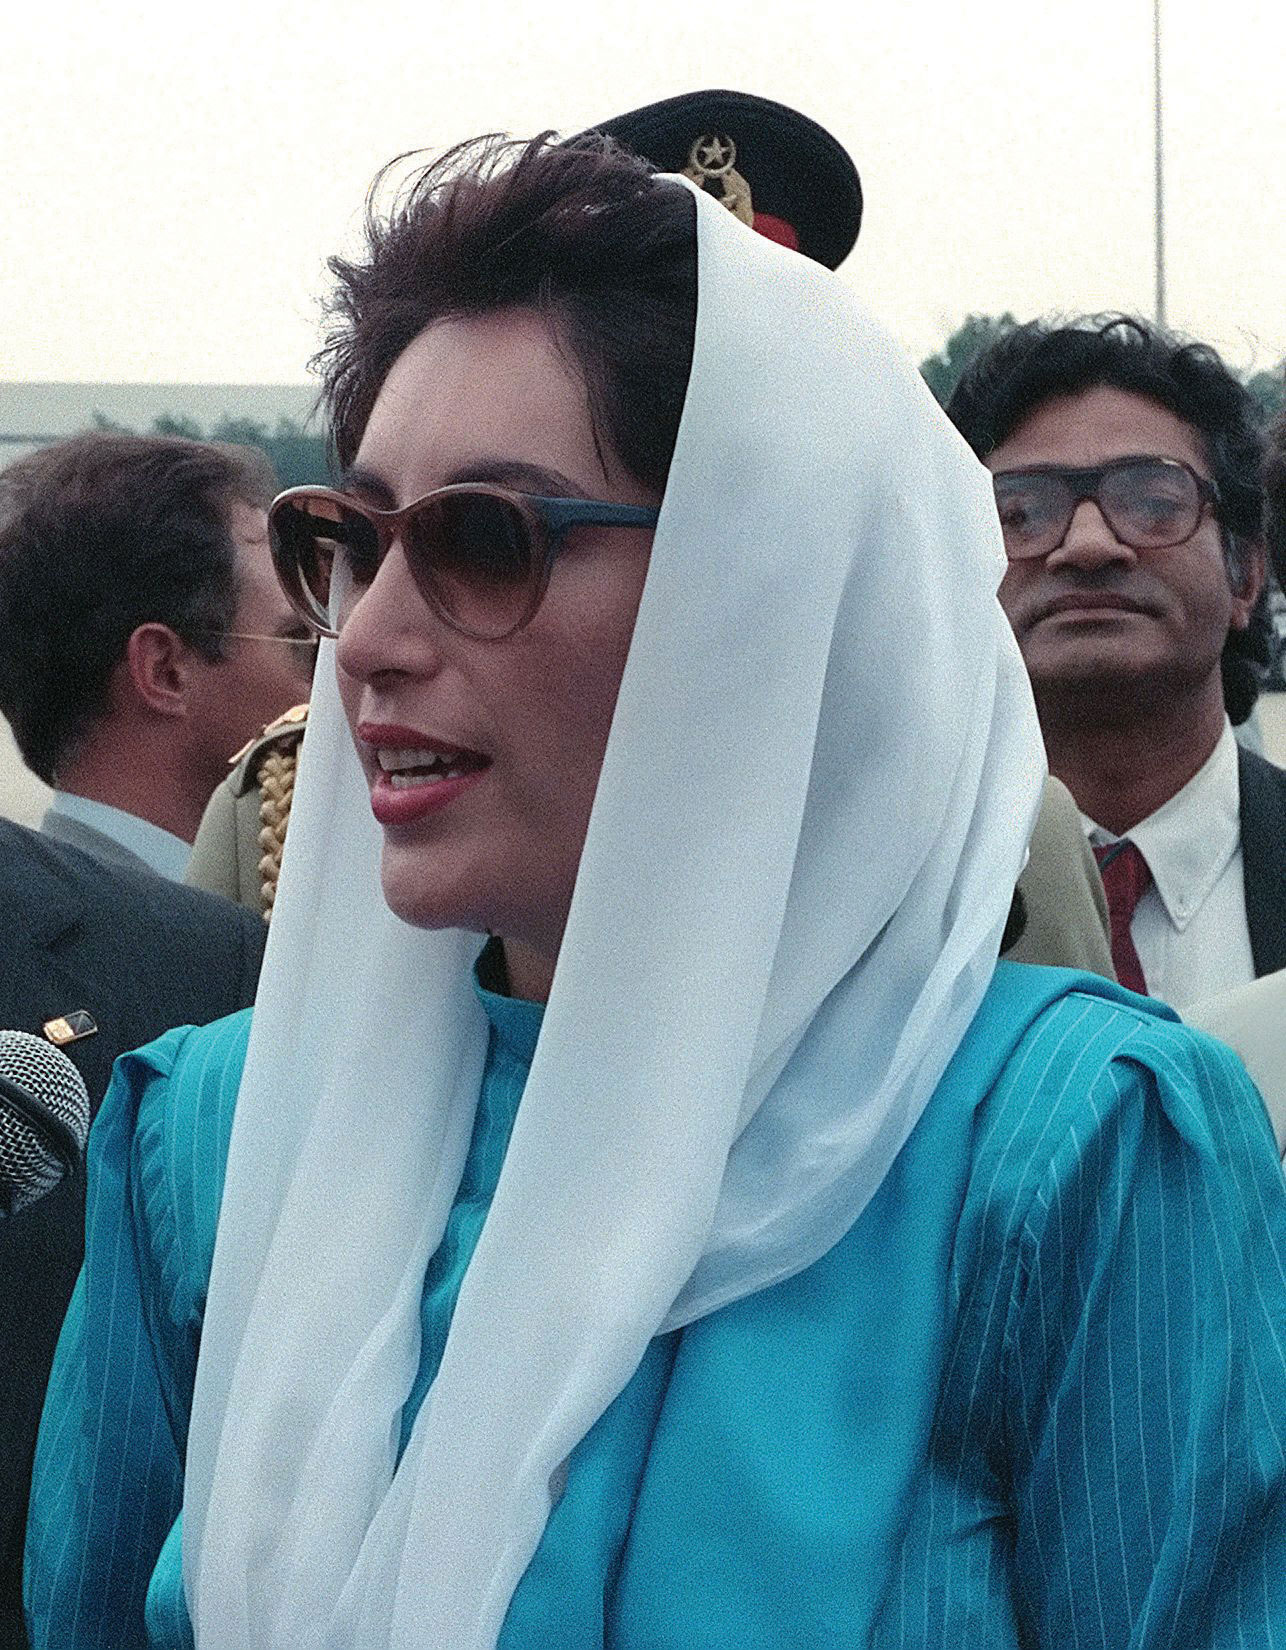 Image search: Zardari Bhutto: benazir bhutto marriage pictures